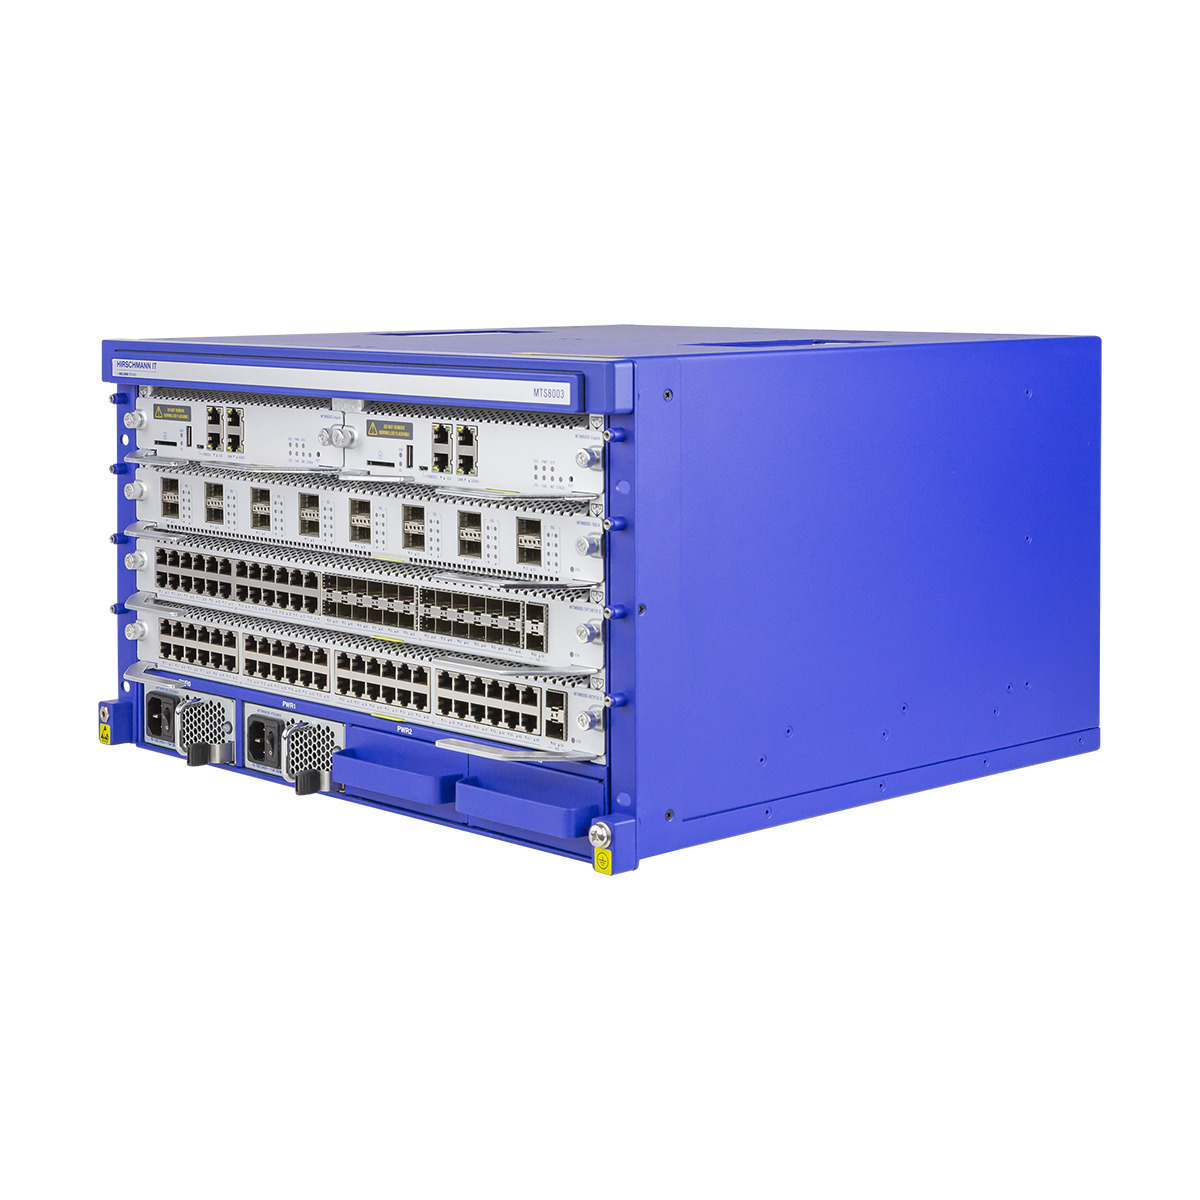 MTS8000 Managed Switch Side View